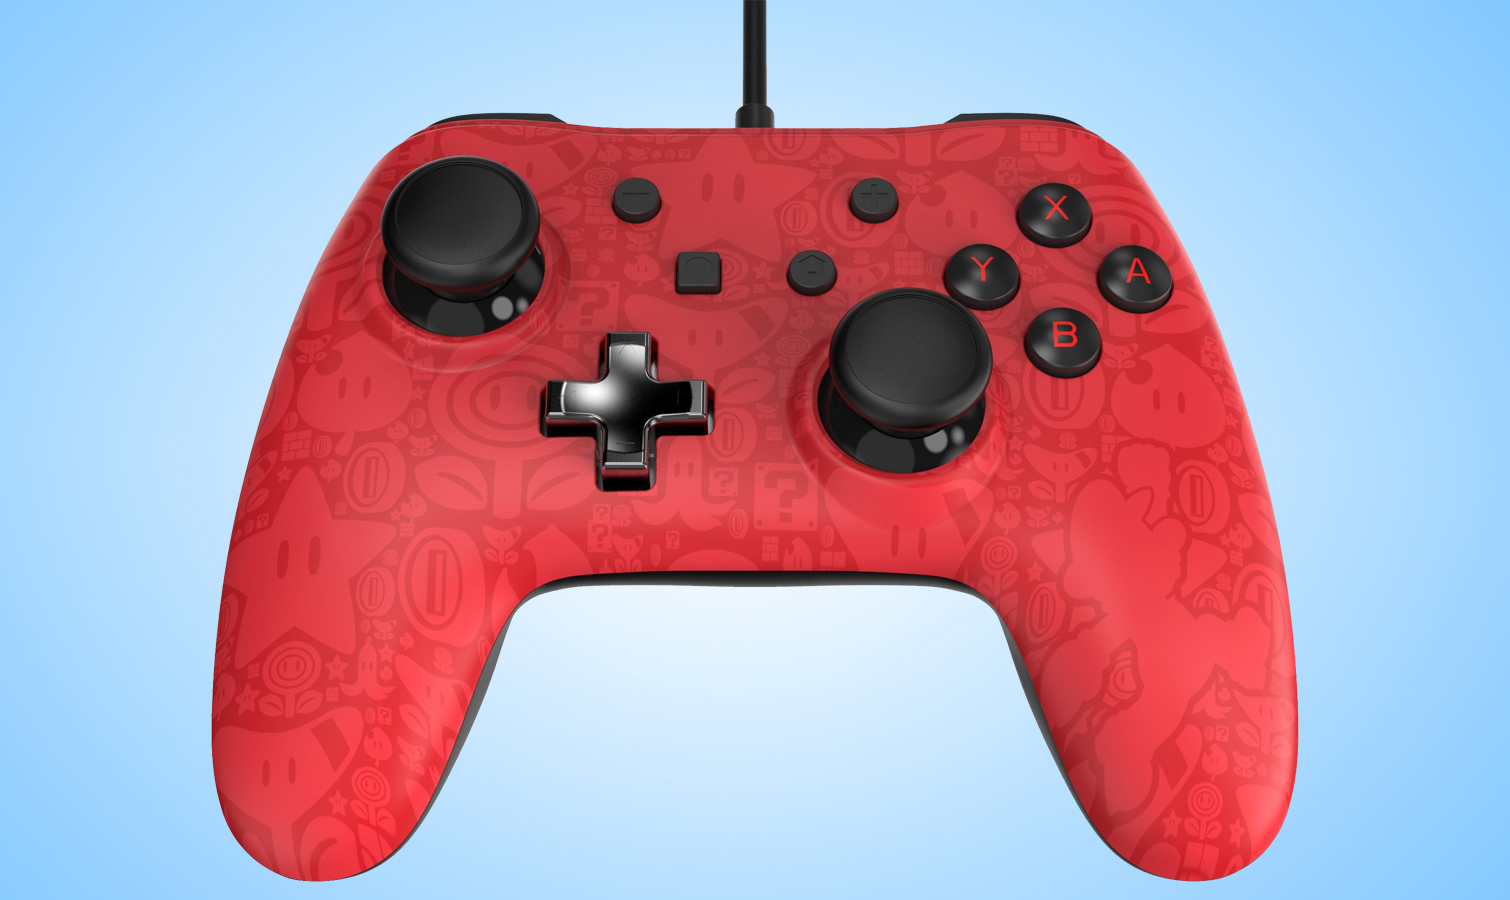 PowerA Nintendo Switch Wired Controller - Full Review and